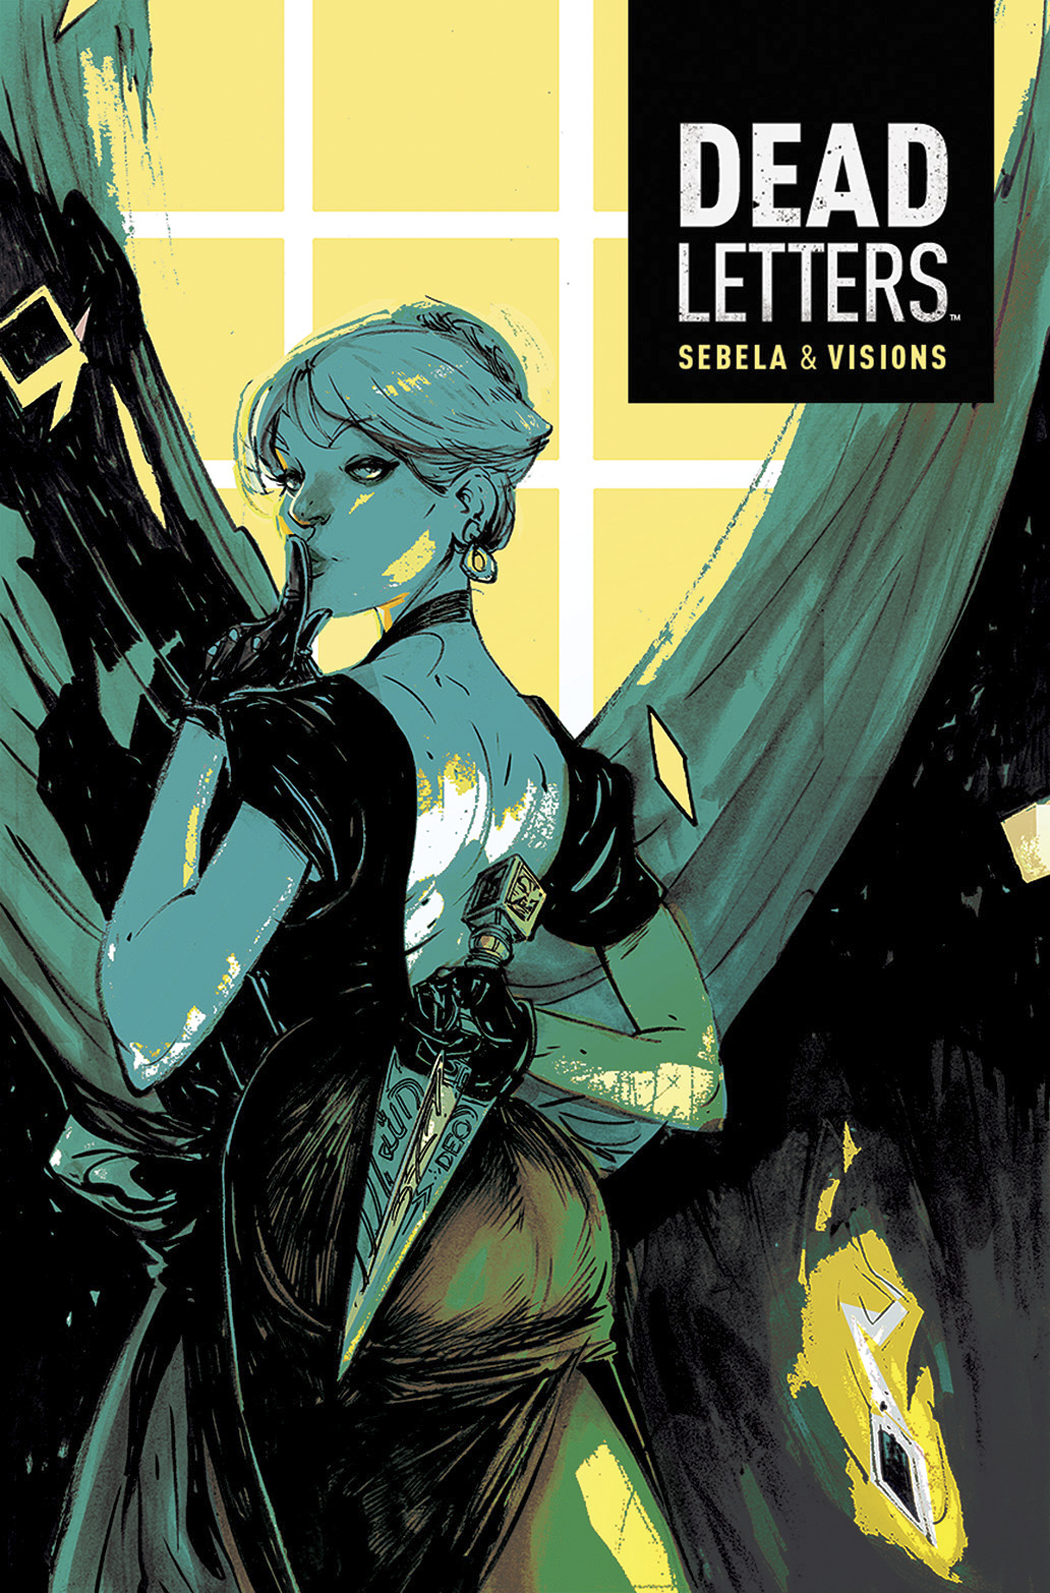 DEAD LETTERS #4